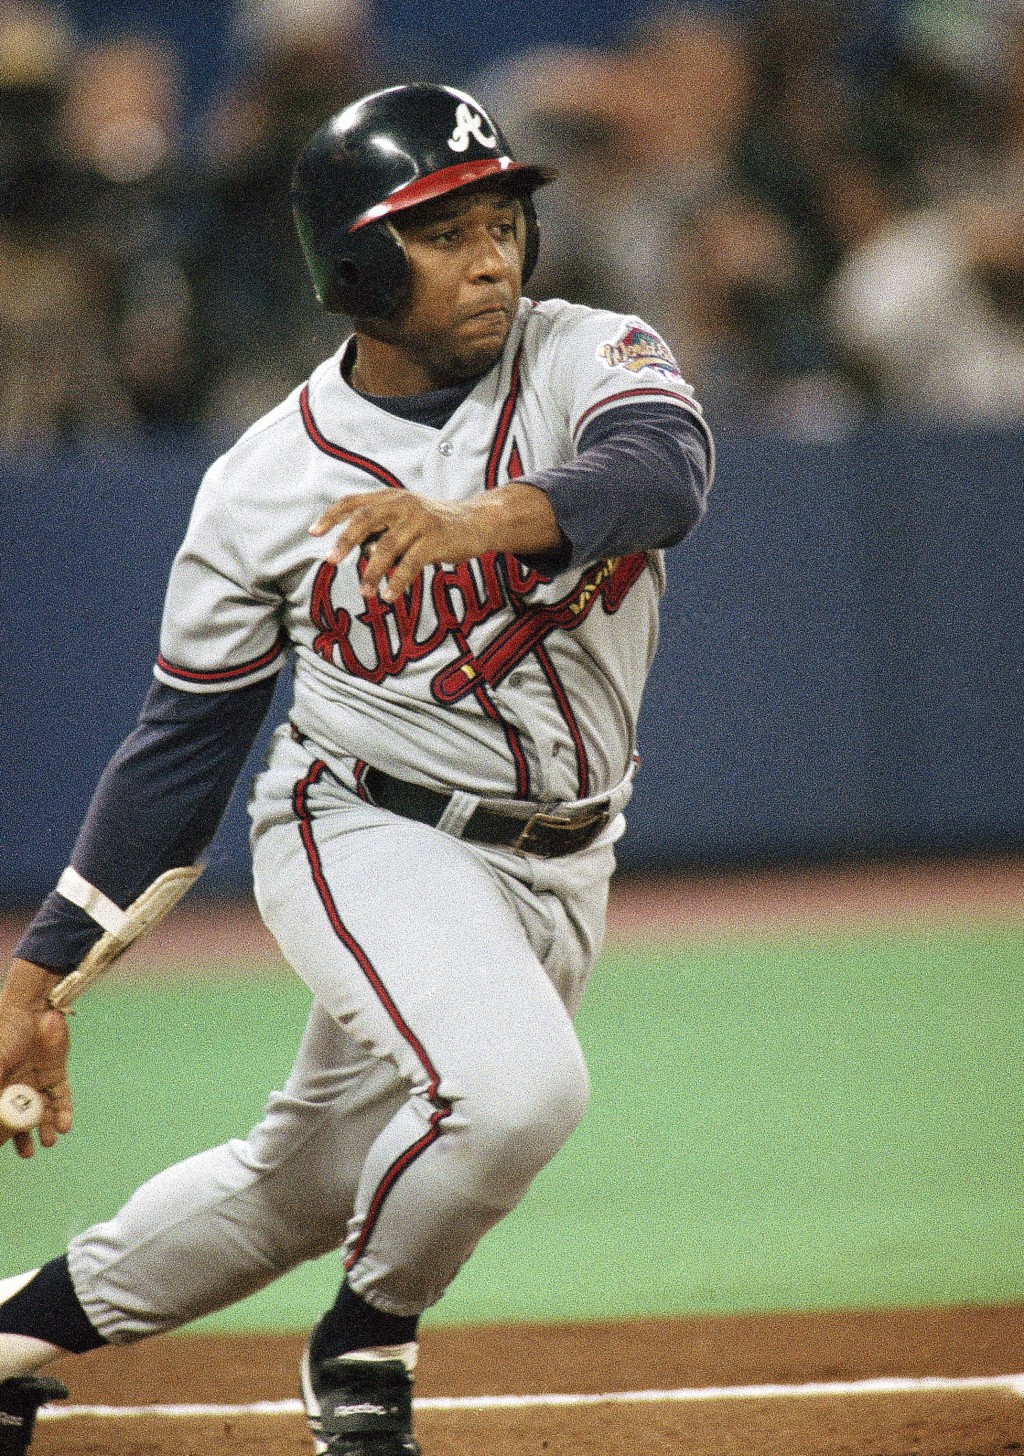 FILE - In this Oct. 22, 1992, file photo, Atlanta Braves' Terry Pendleton watches an RBI double against the Toronto Blue Jays in the first inning of G...